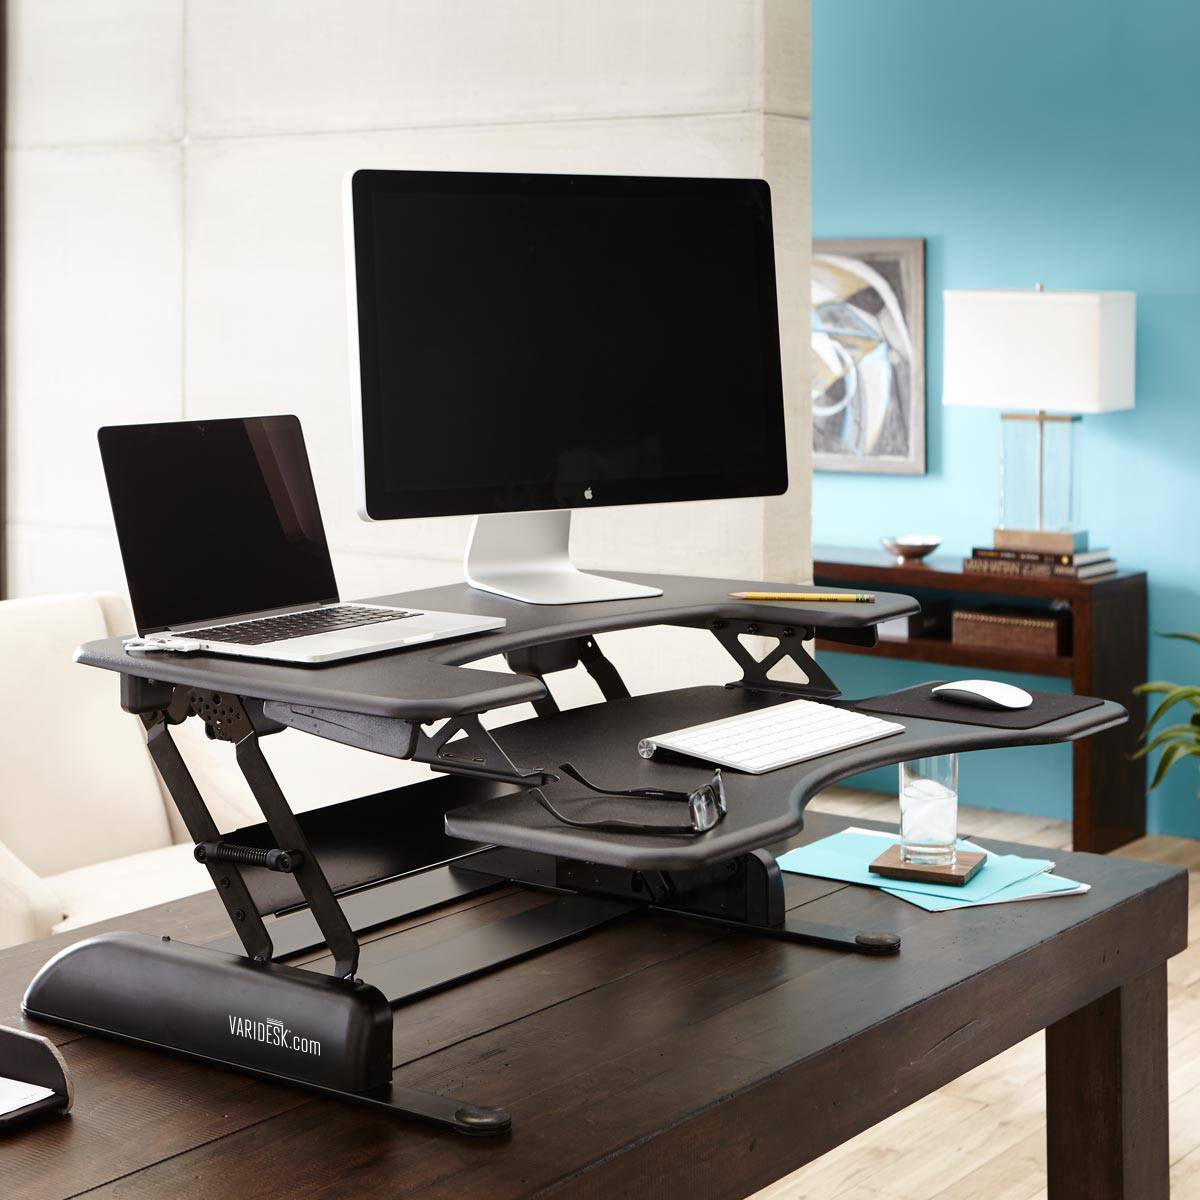 An indepth review of the top Standing Desk Chairs available